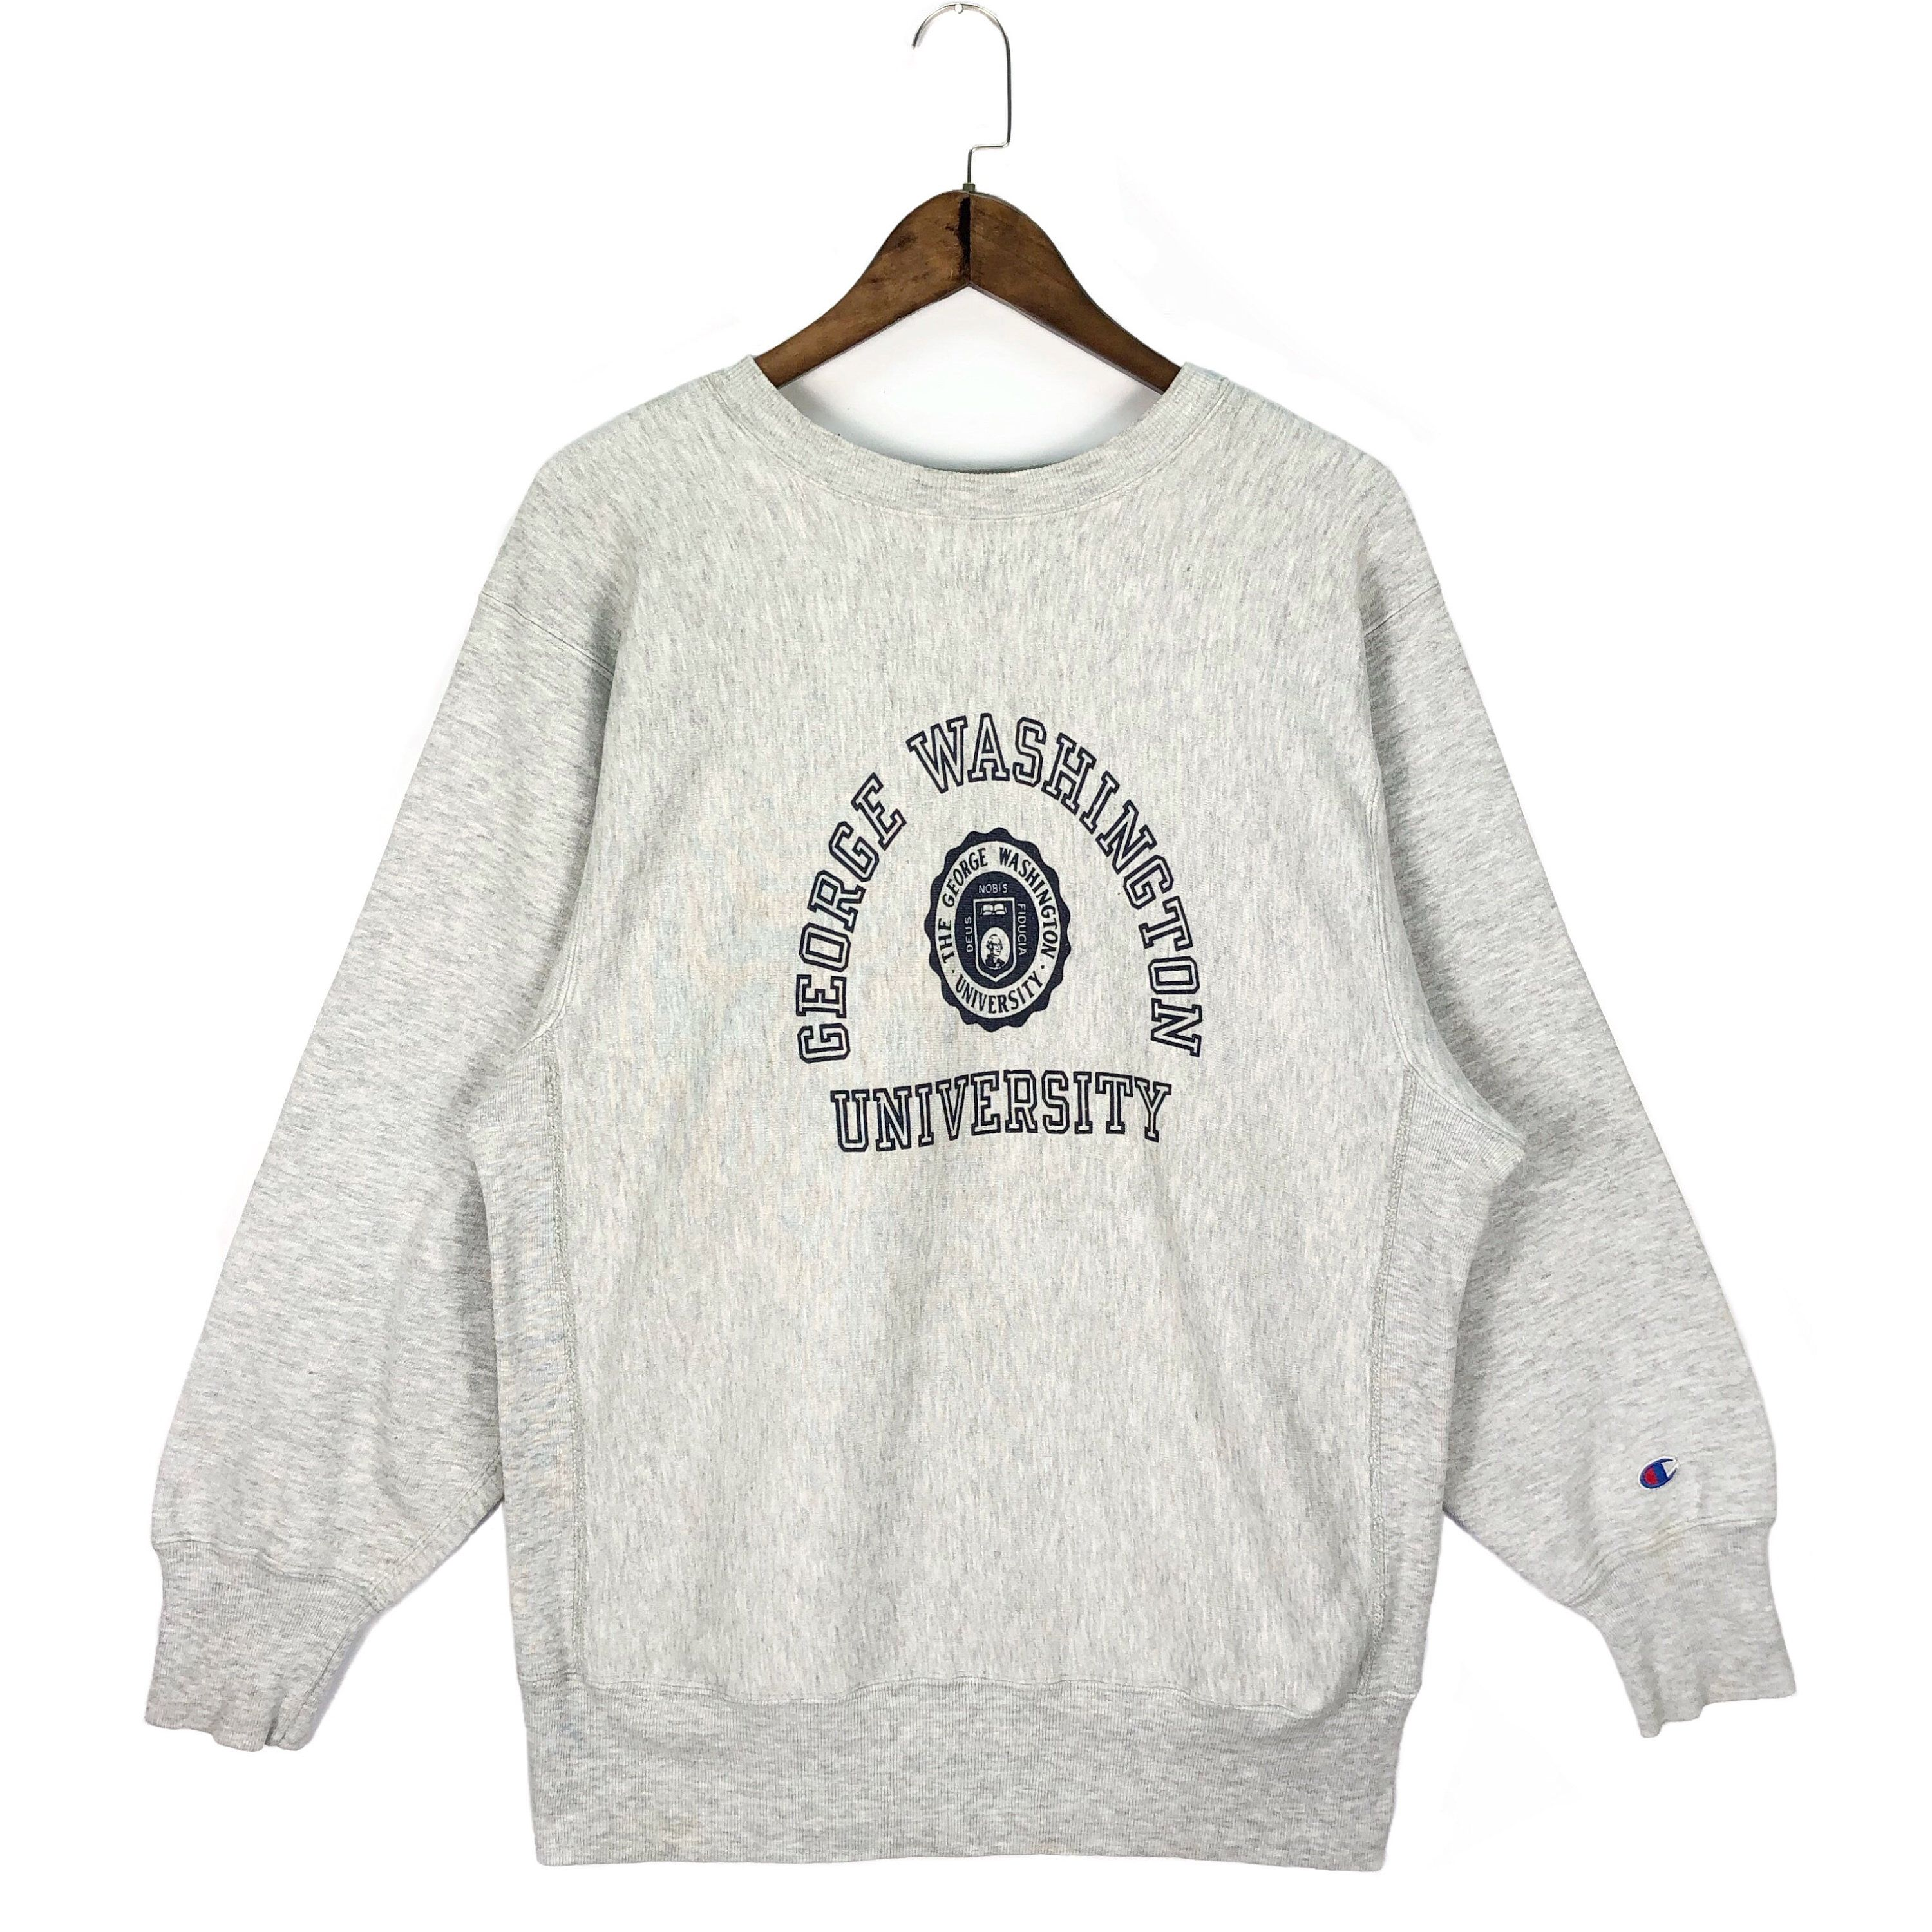 Excited To Share This Item From My Etsy Shop Vintage 90s George Washington University Sweatsh Sweatshirts University Sweatshirts George Washington University [ 3000 x 3000 Pixel ]